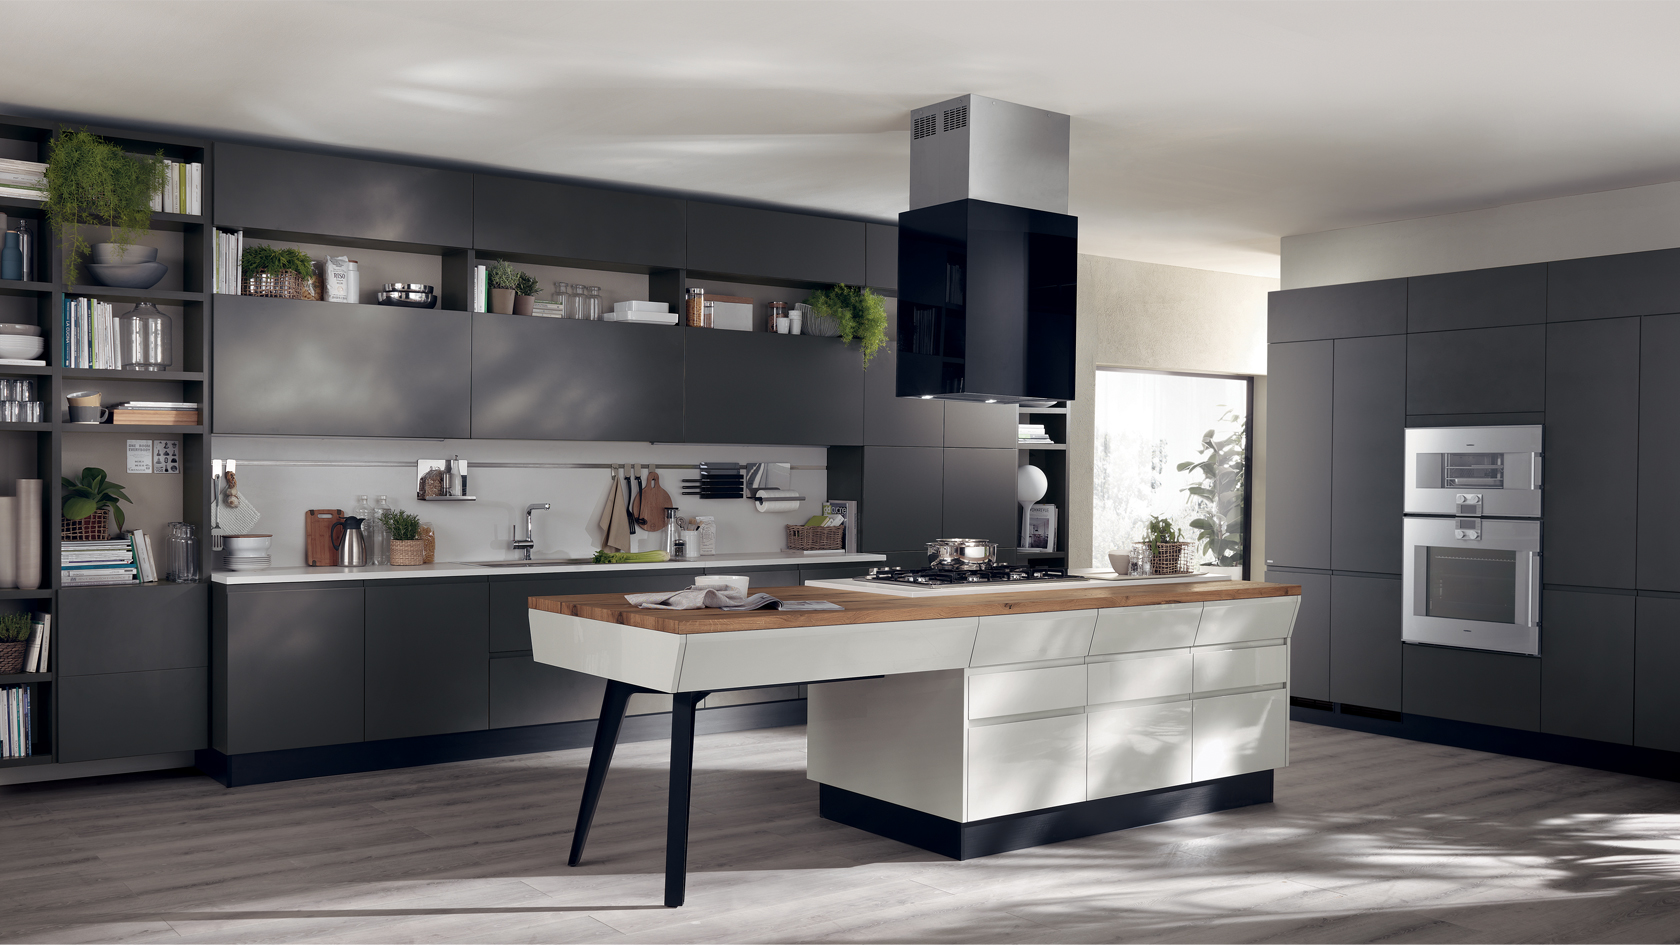 La Cucina Kitchen Gallery Luxehome To Debut Kitchen Cabinetry Collections At The Chicago